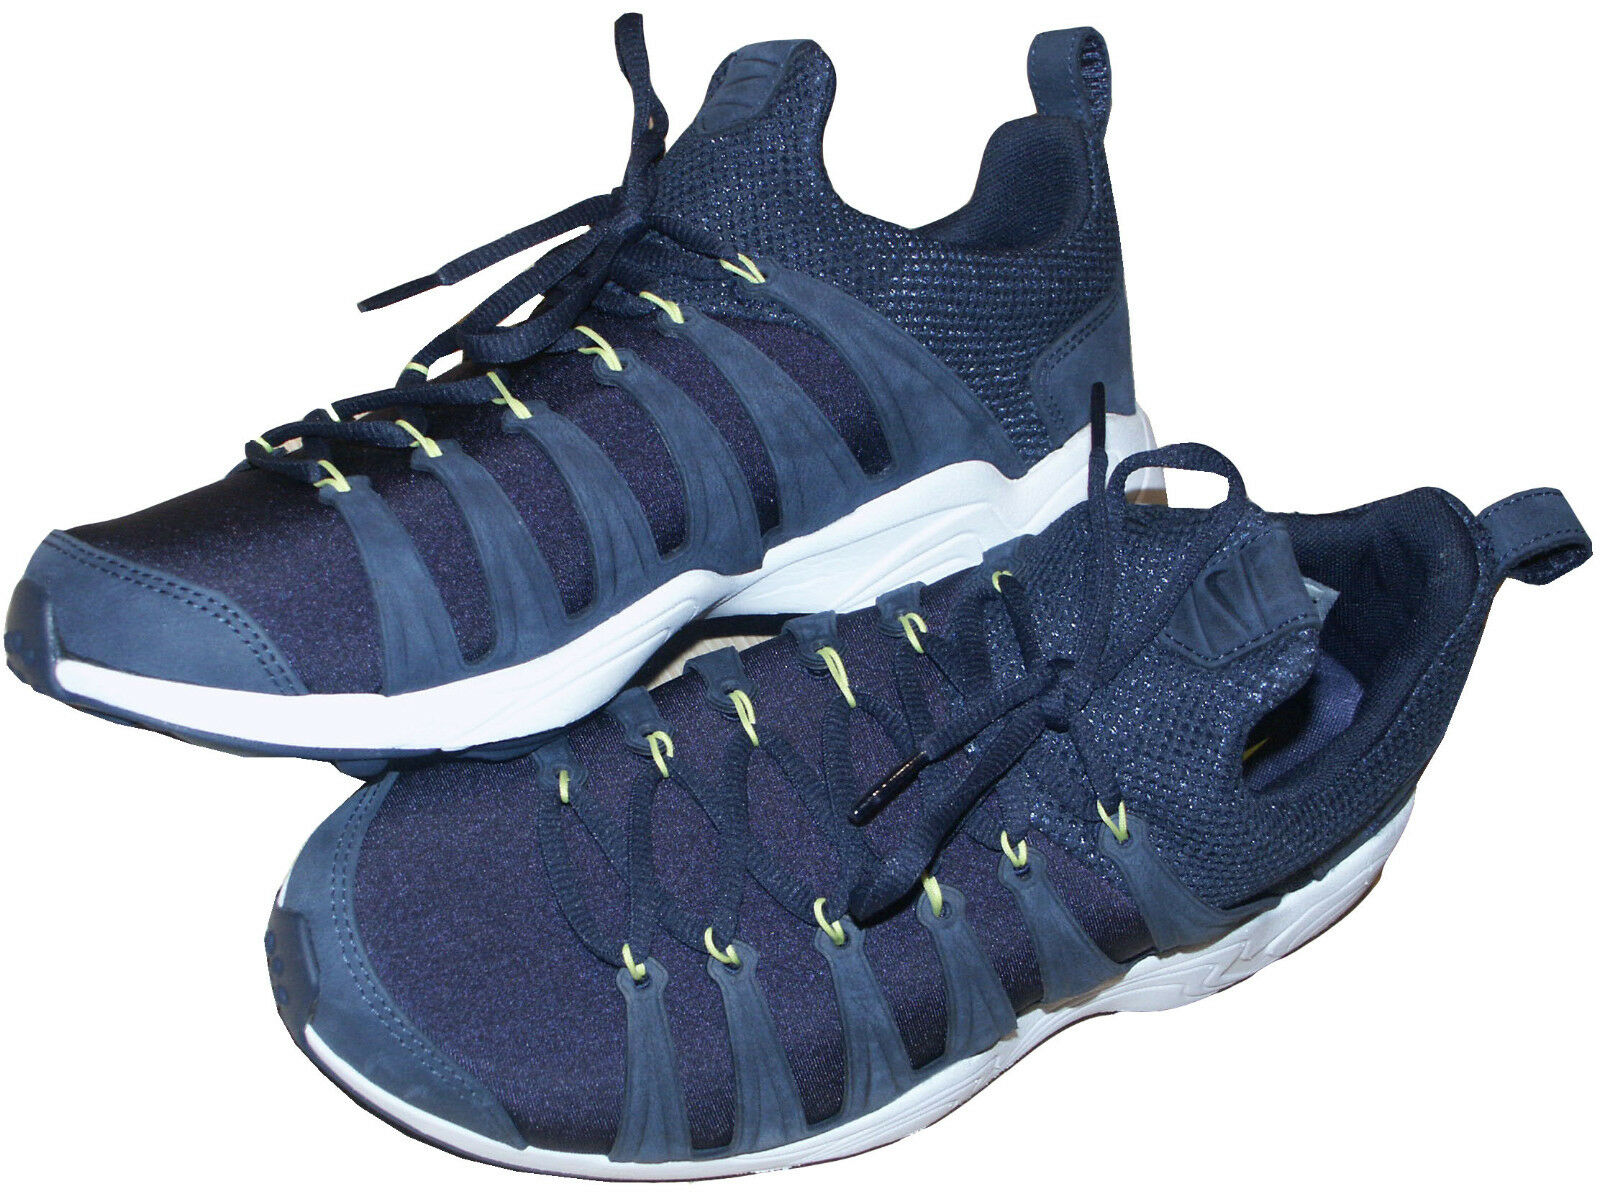 NIKE AIR ZOOM SPIRIMIC LIGHTWEIGHT NAVY SZ:UK8 TRAINERS / SHOES RARE SZ:UK8 NAVY EU42.5 US9 d56591